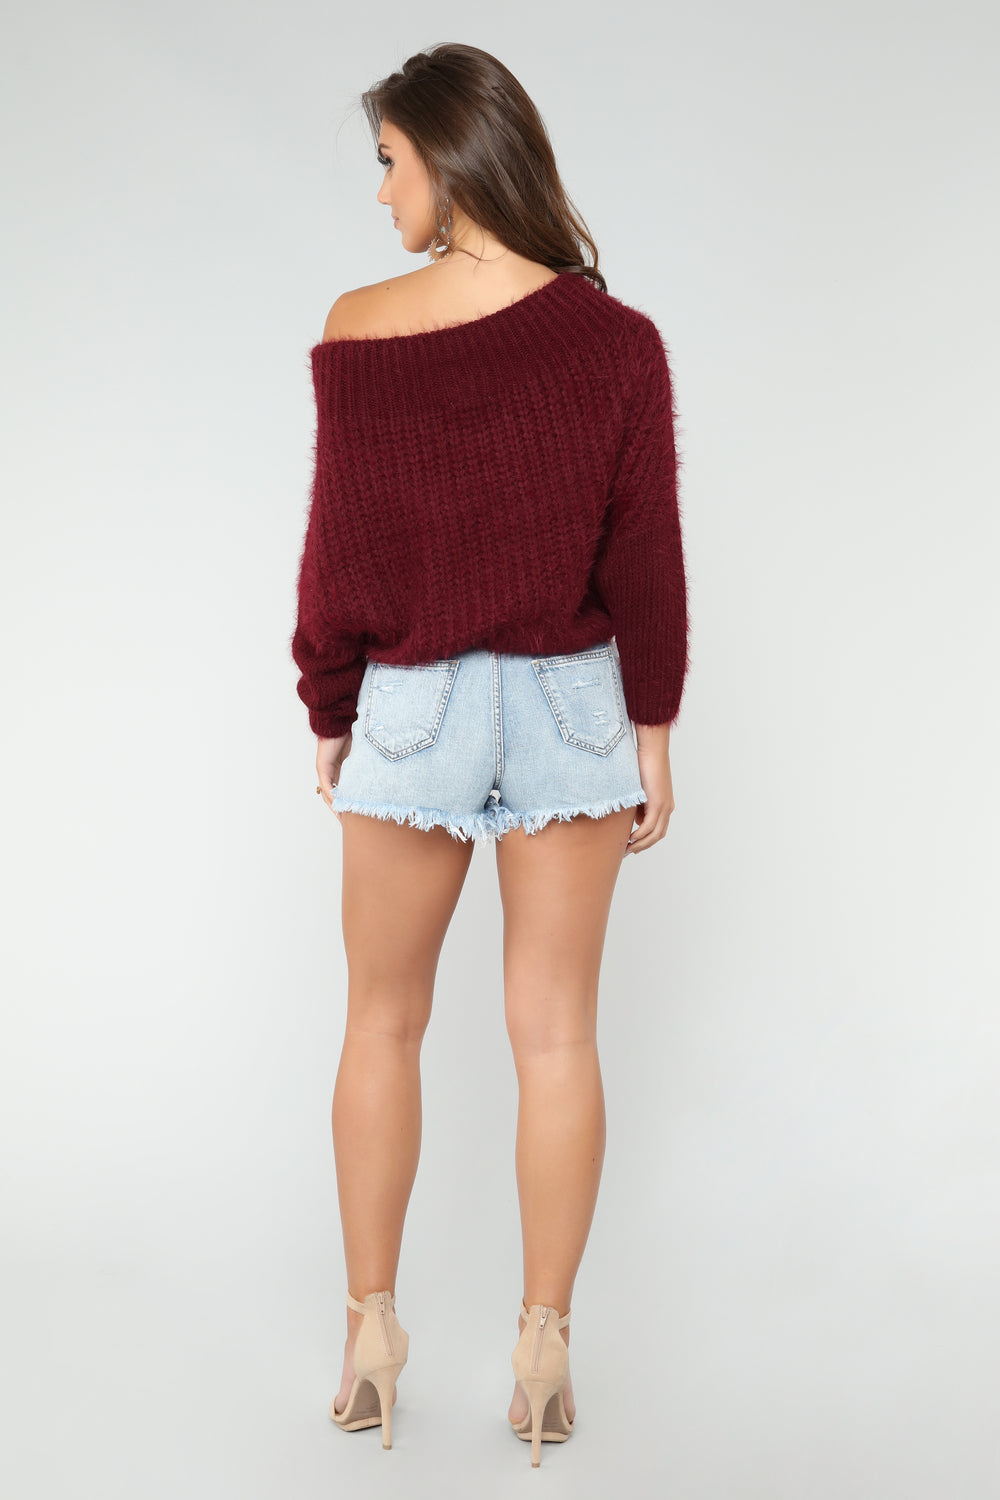 Goes Over My Head Sweater - Burgundy